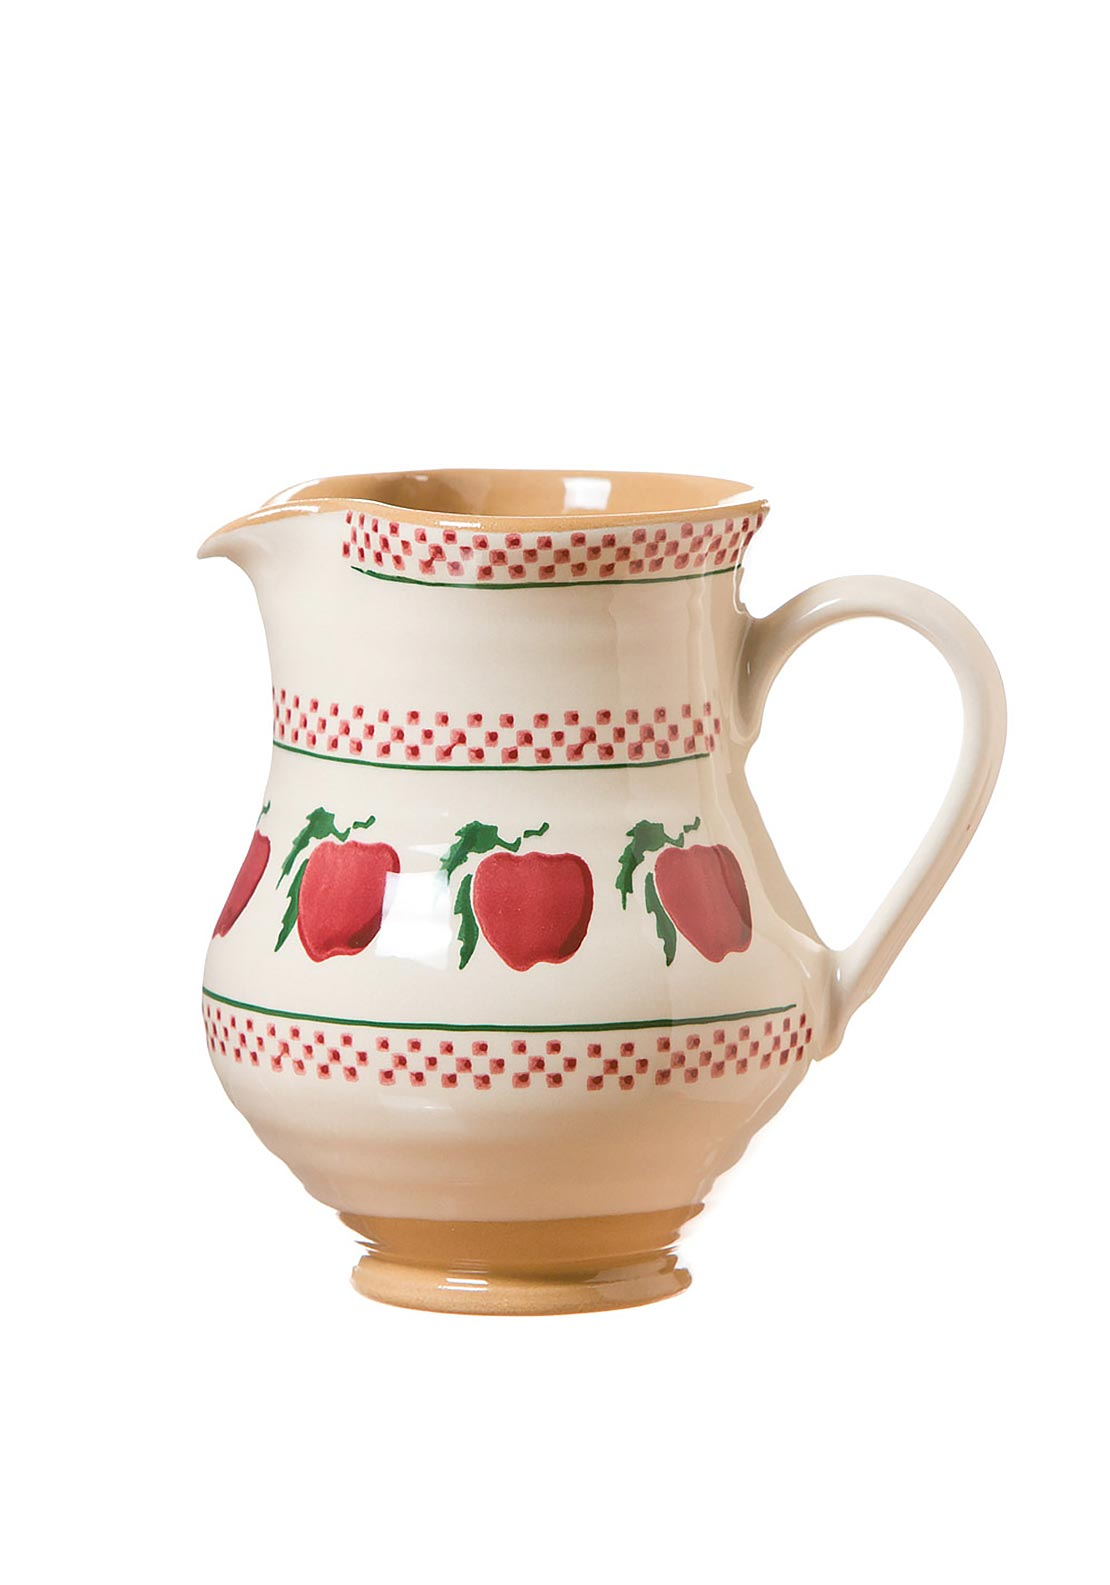 Nicholas Mosse Pottery Apple Jug, Medium